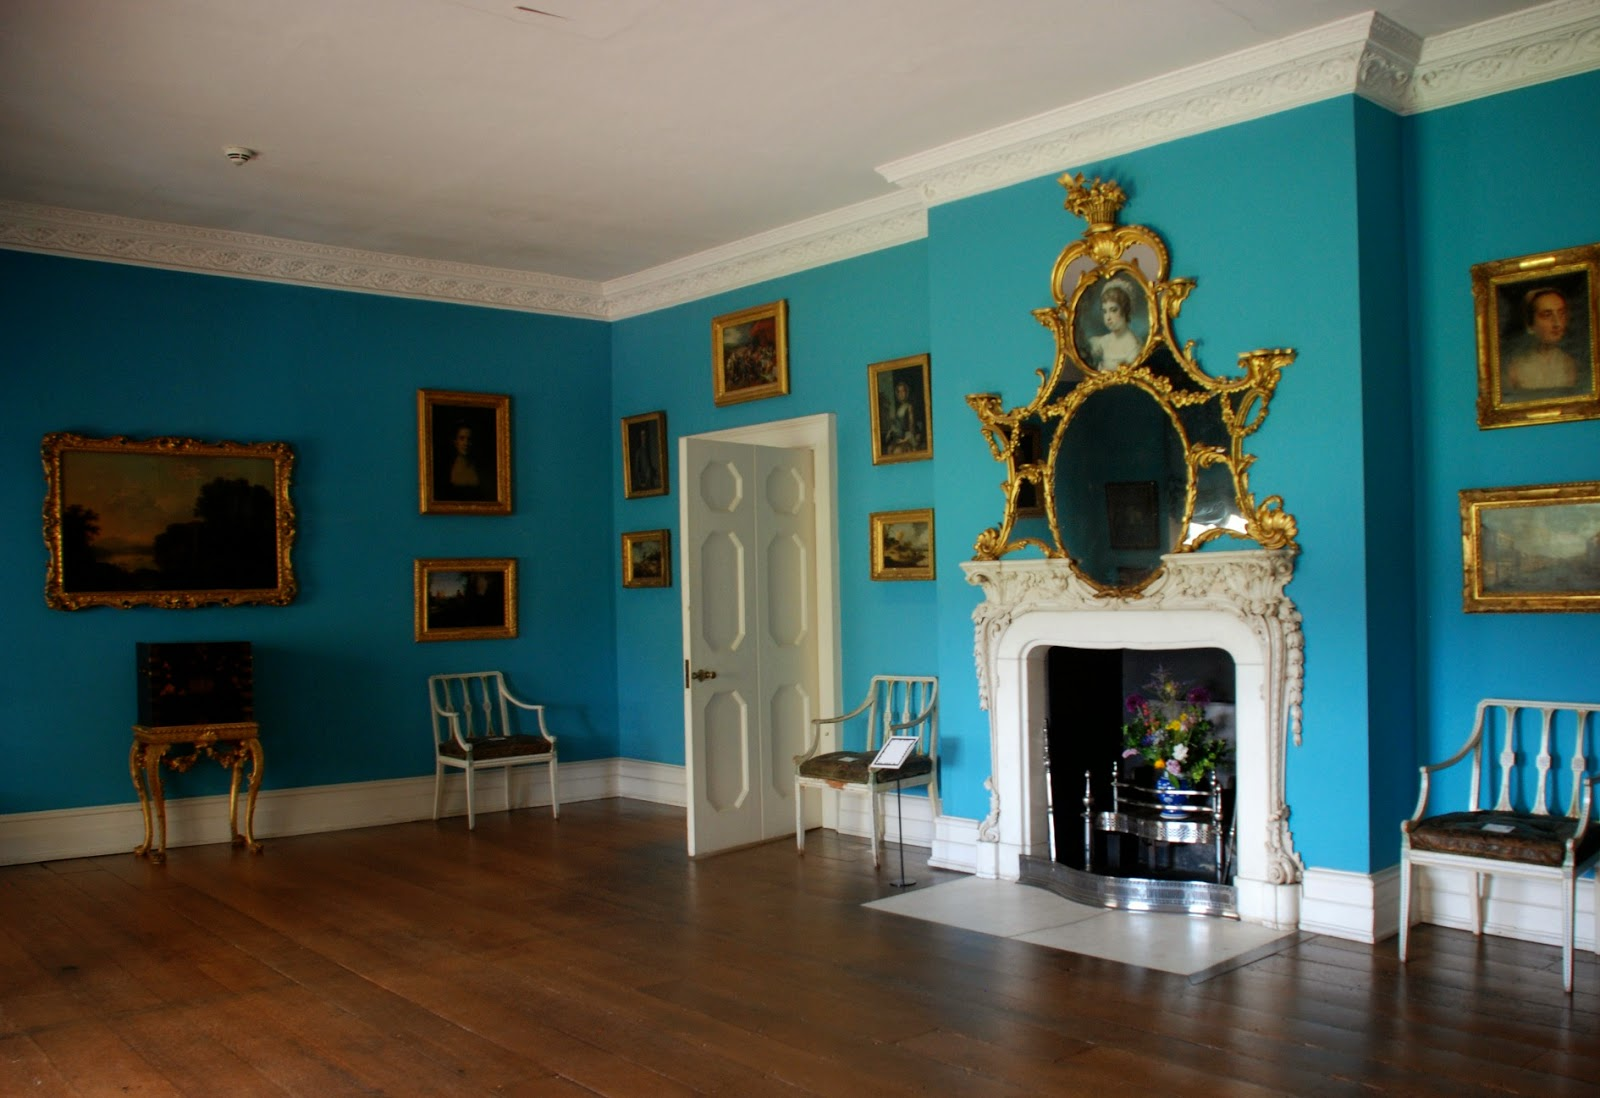 Mrs Child's boudoir, Osterley Park, West London